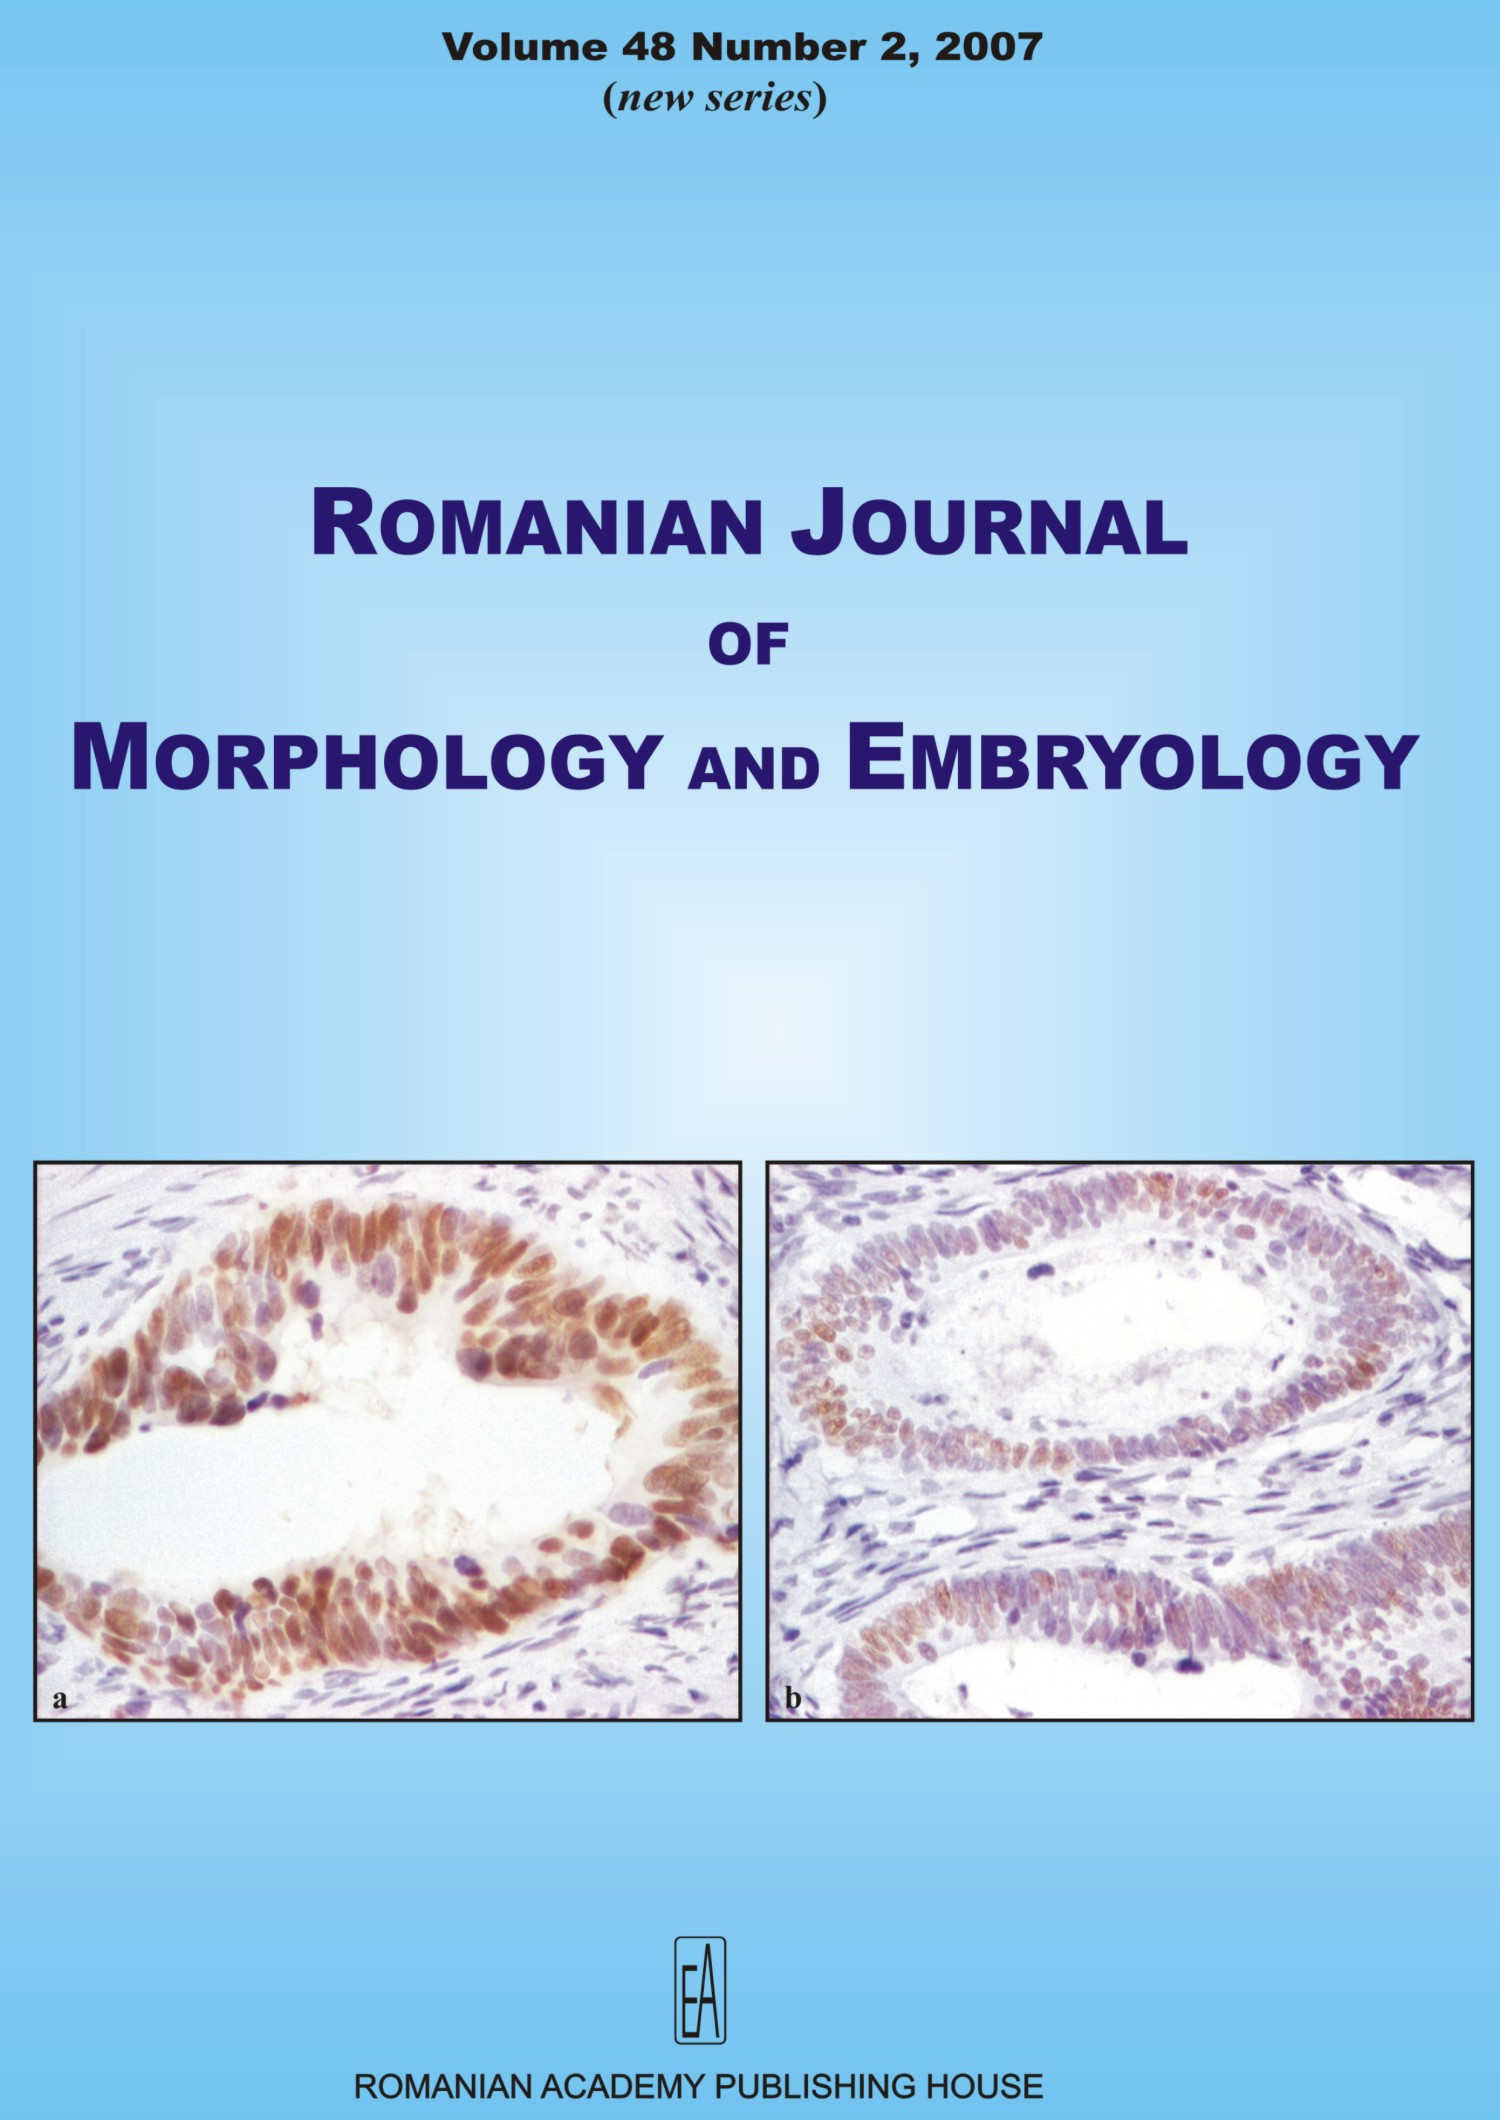 Romanian Journal of Morphology and Embryology, vol. 48 no. 2, 2007